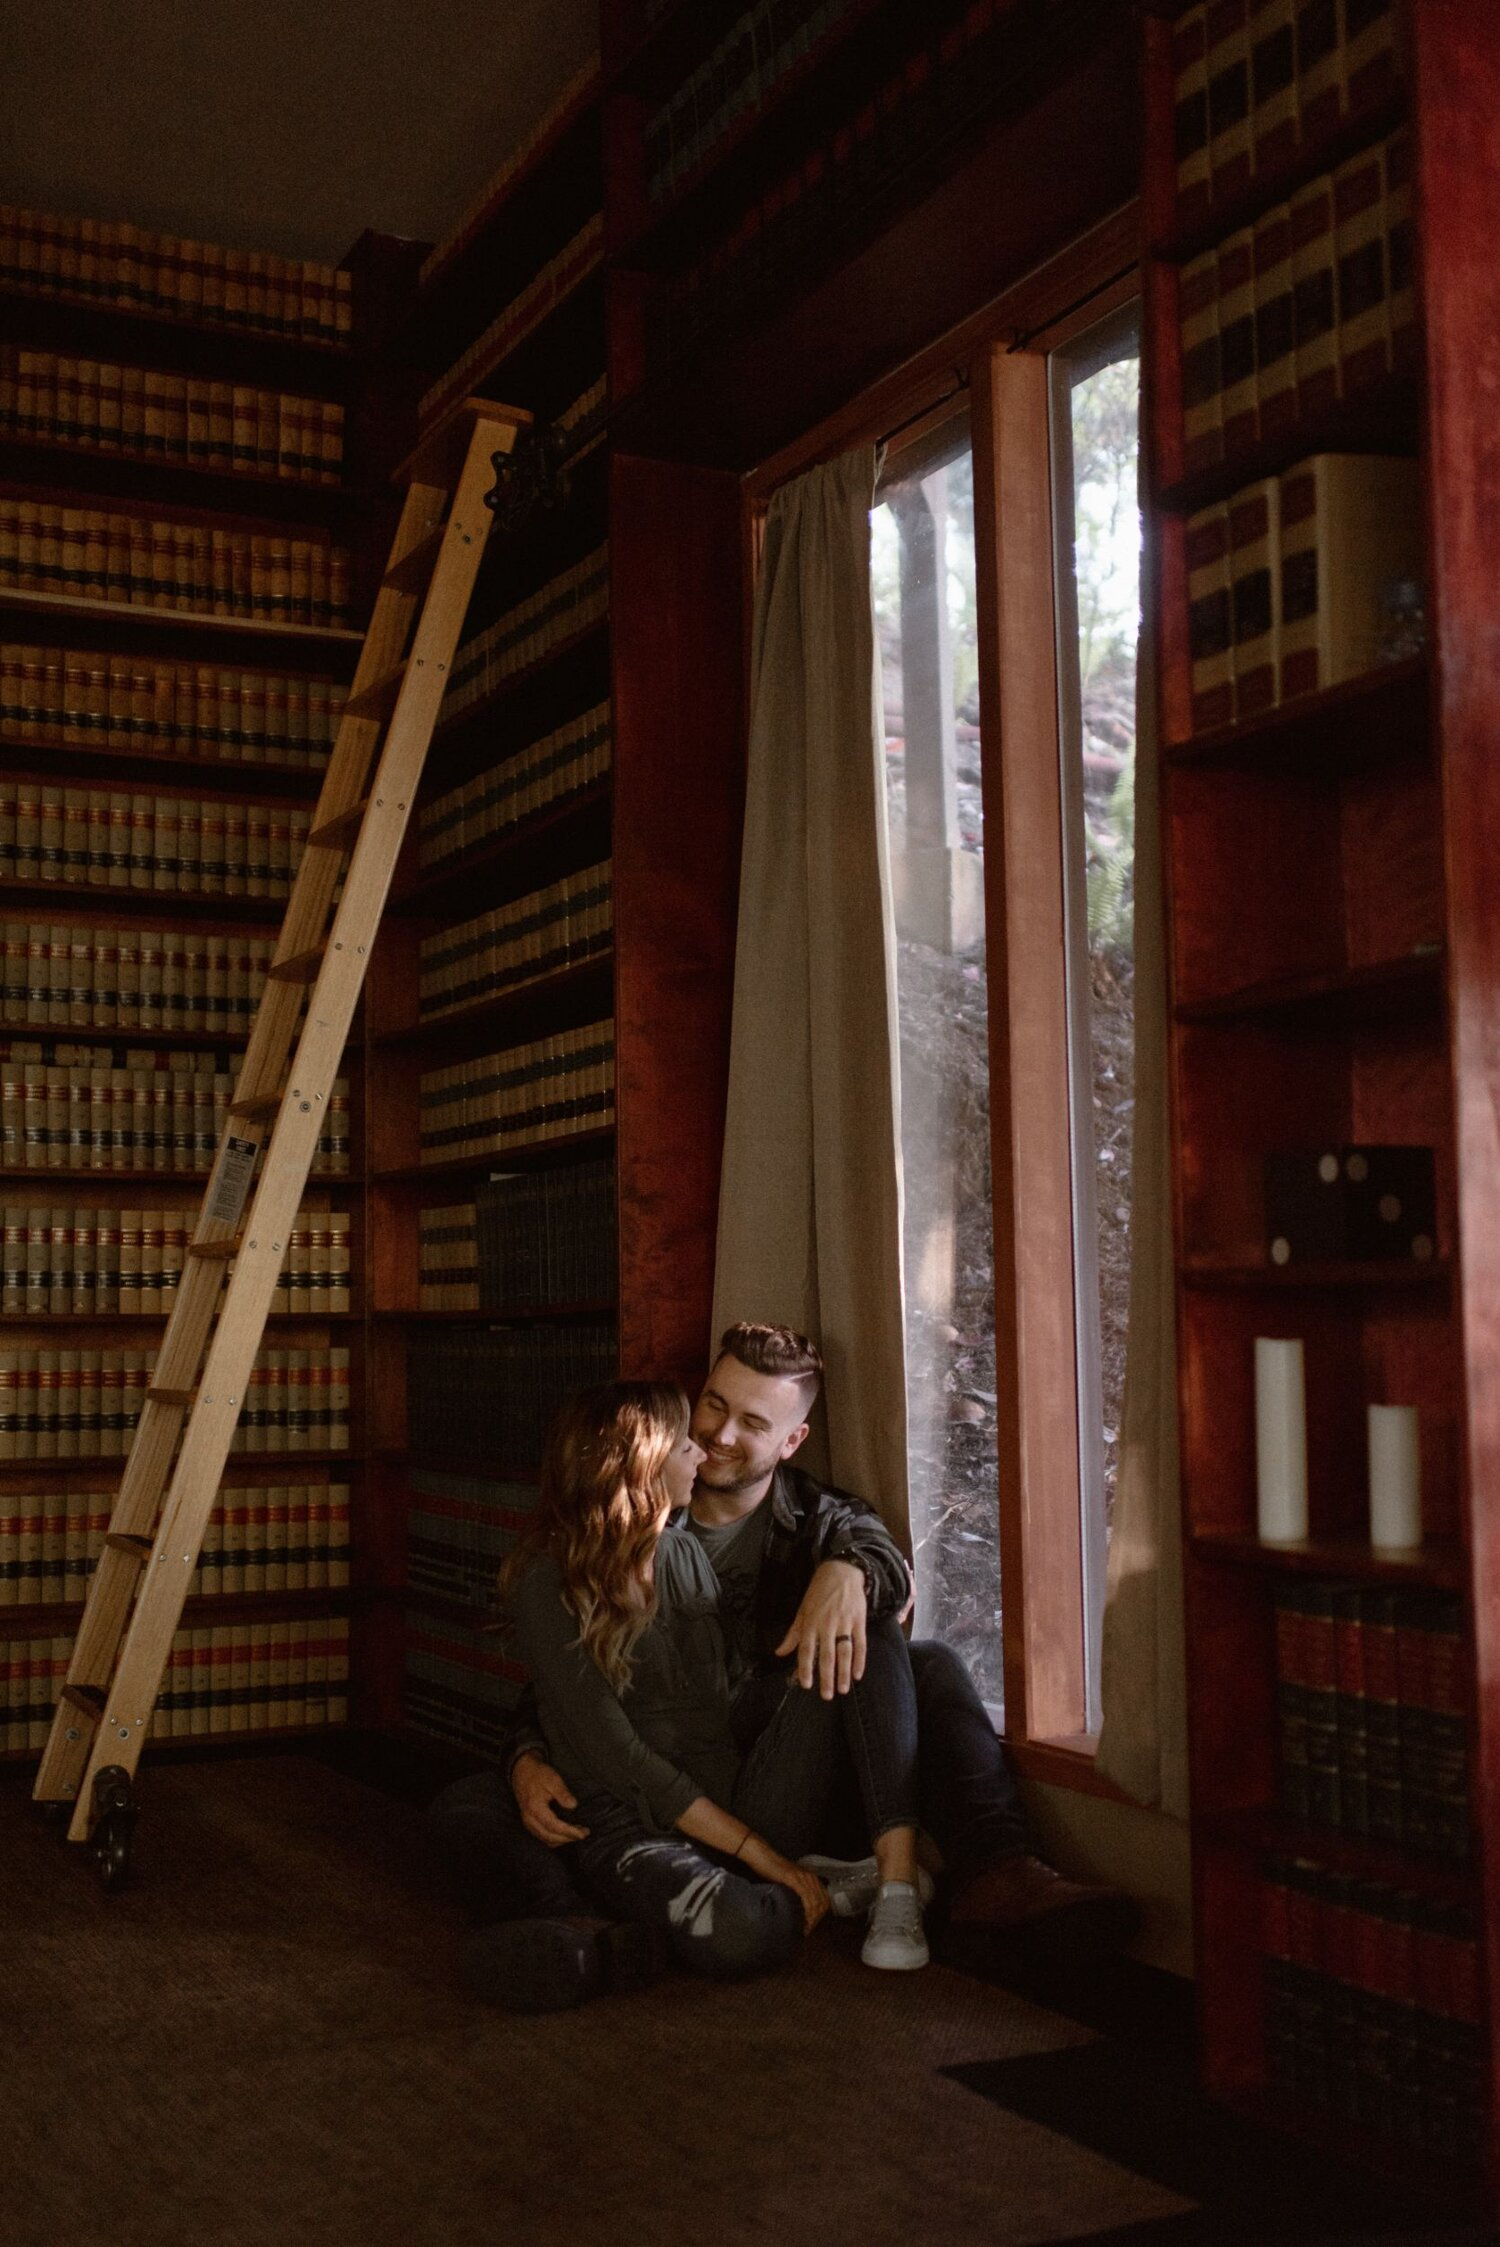 Man and woman embrace in an Airbnb in a room filled with bookshelves.